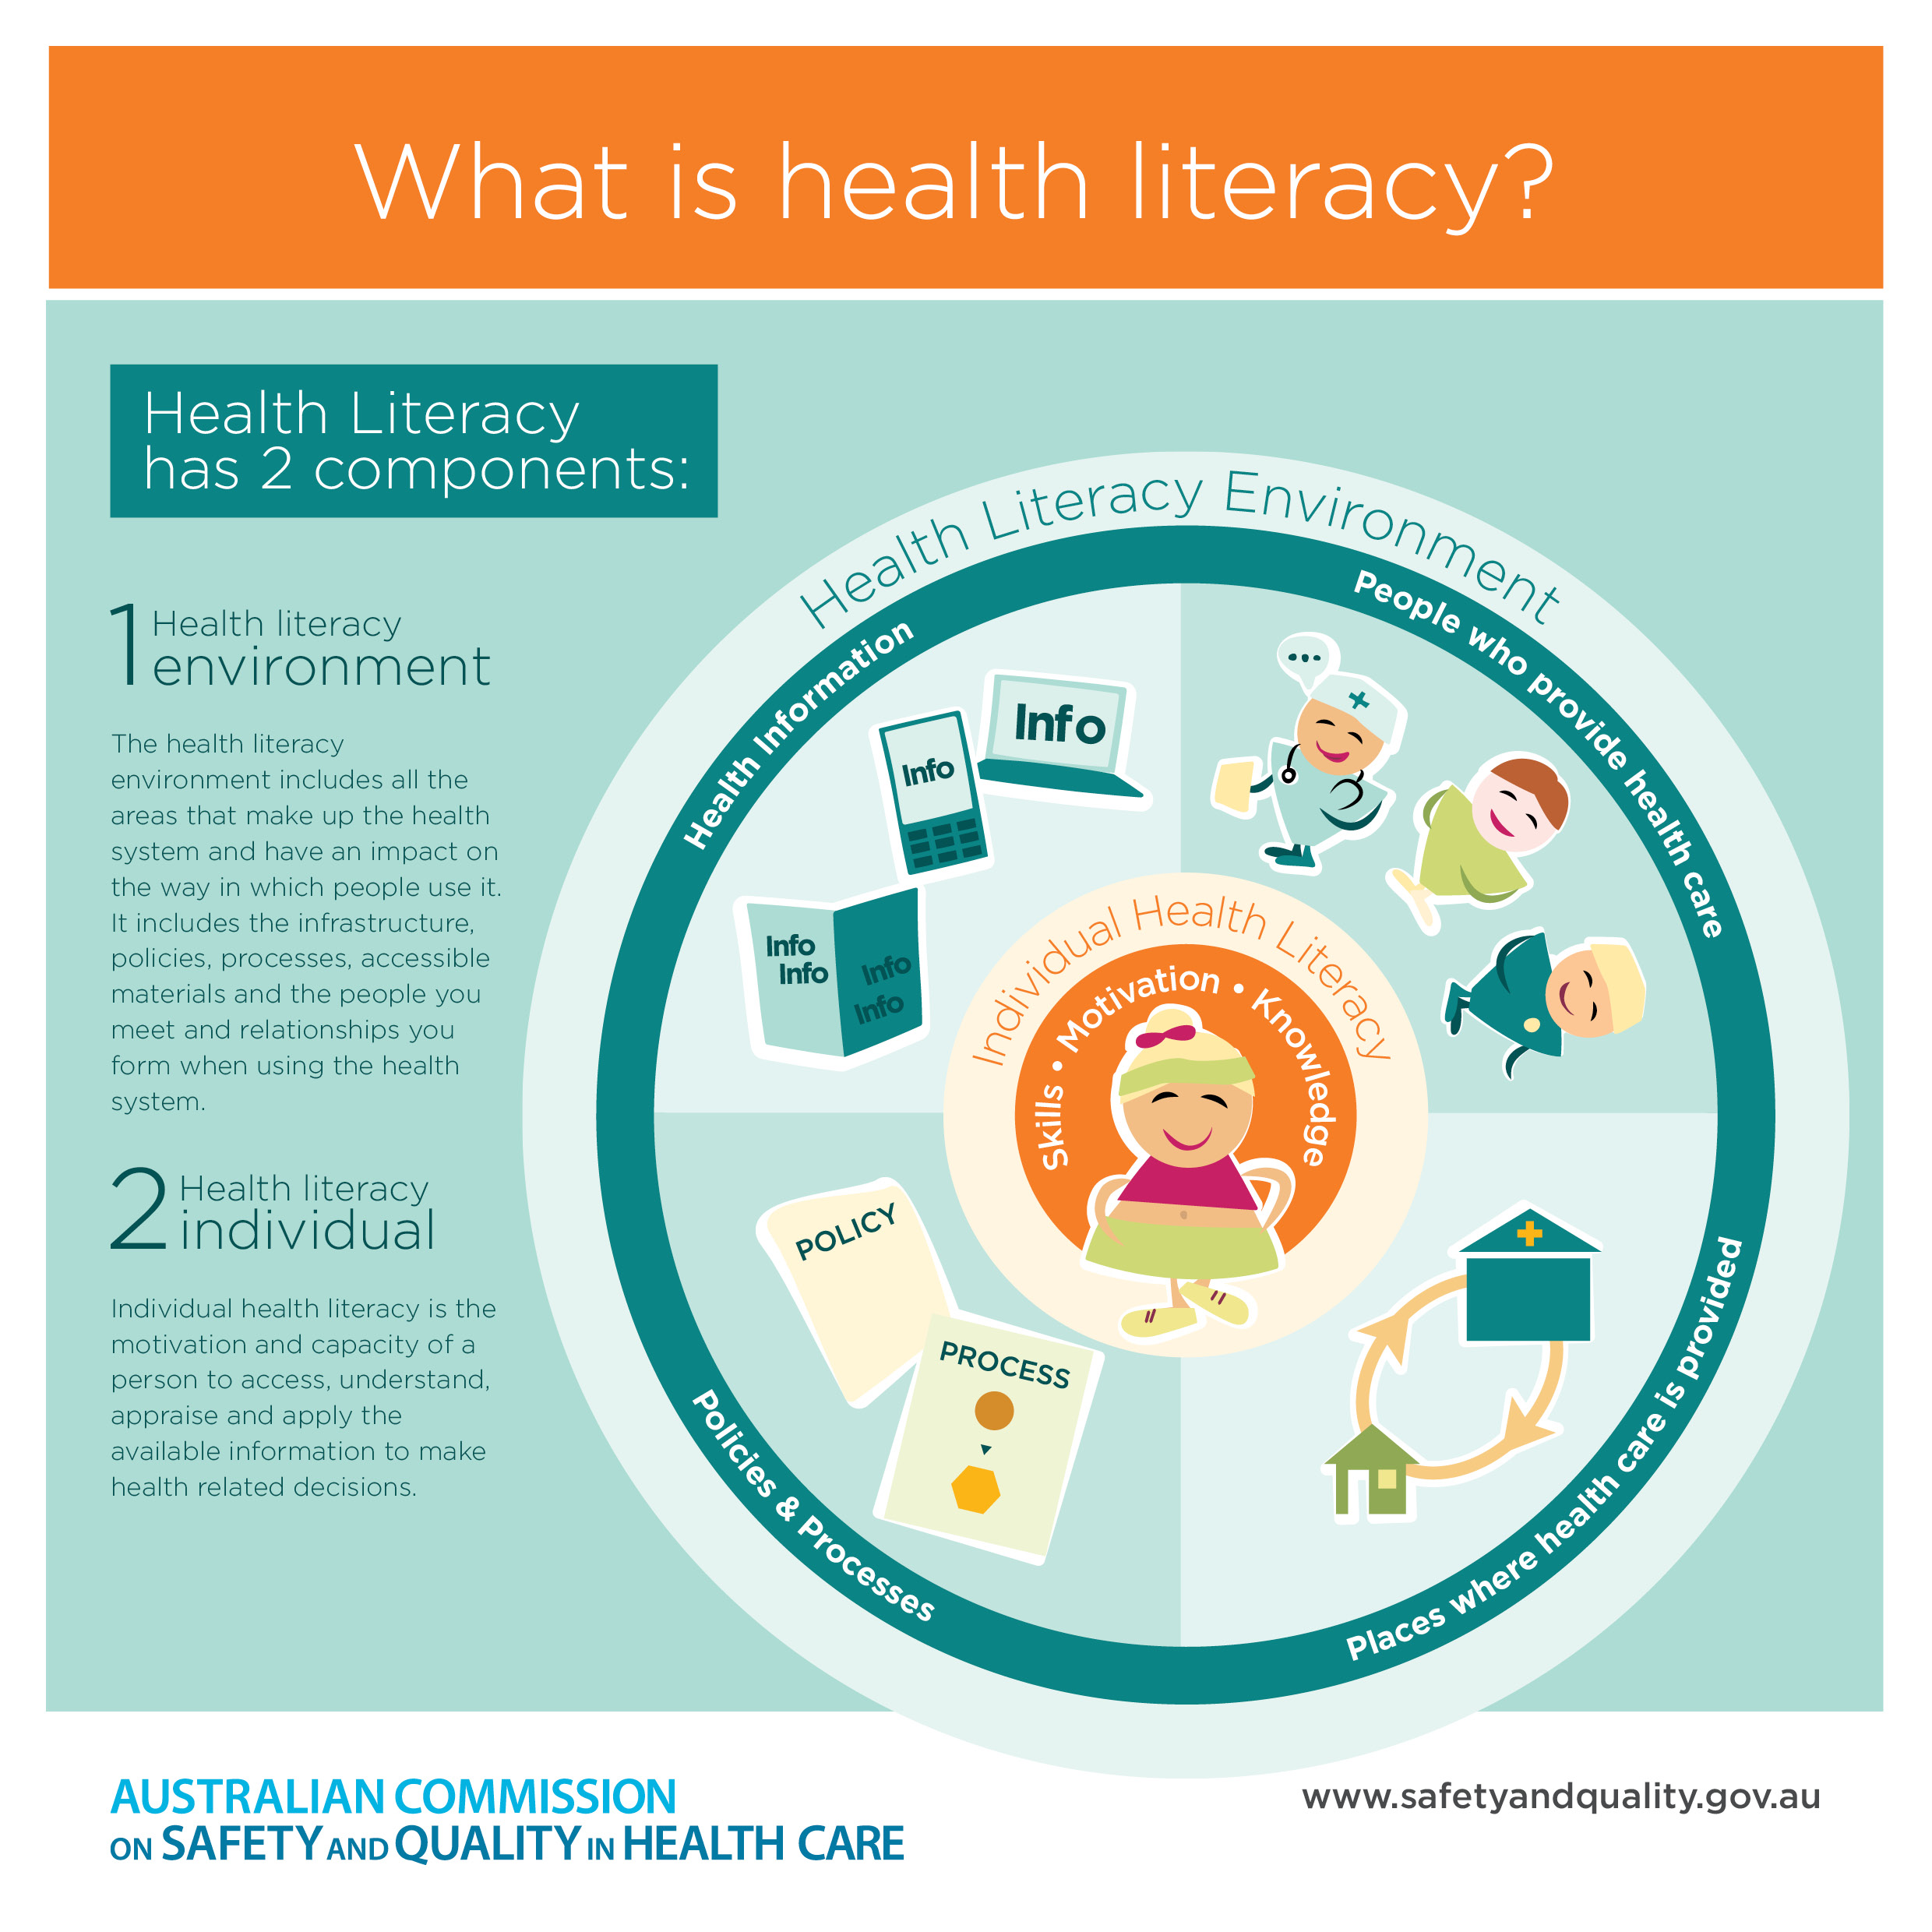 Infographic-What-is-health-literacy-two-components.jpg